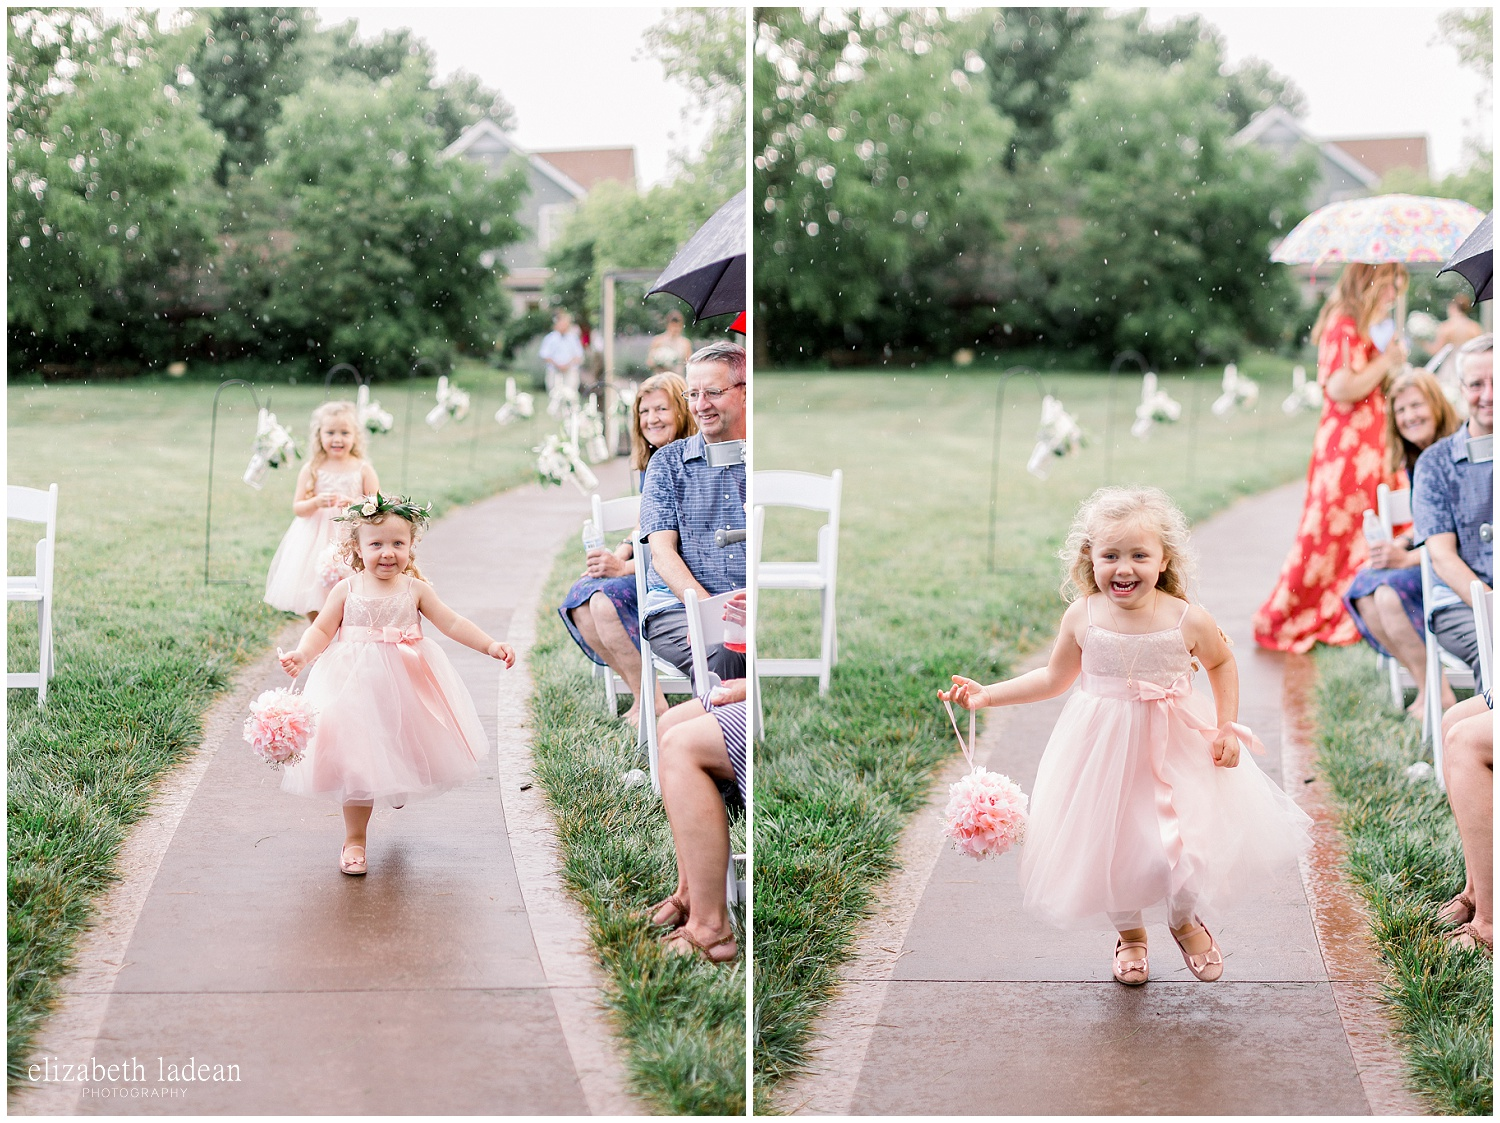 -behind-the-scenes-of-a-wedding-photographer-2018-elizabeth-ladean-photography-photo_3480.jpg